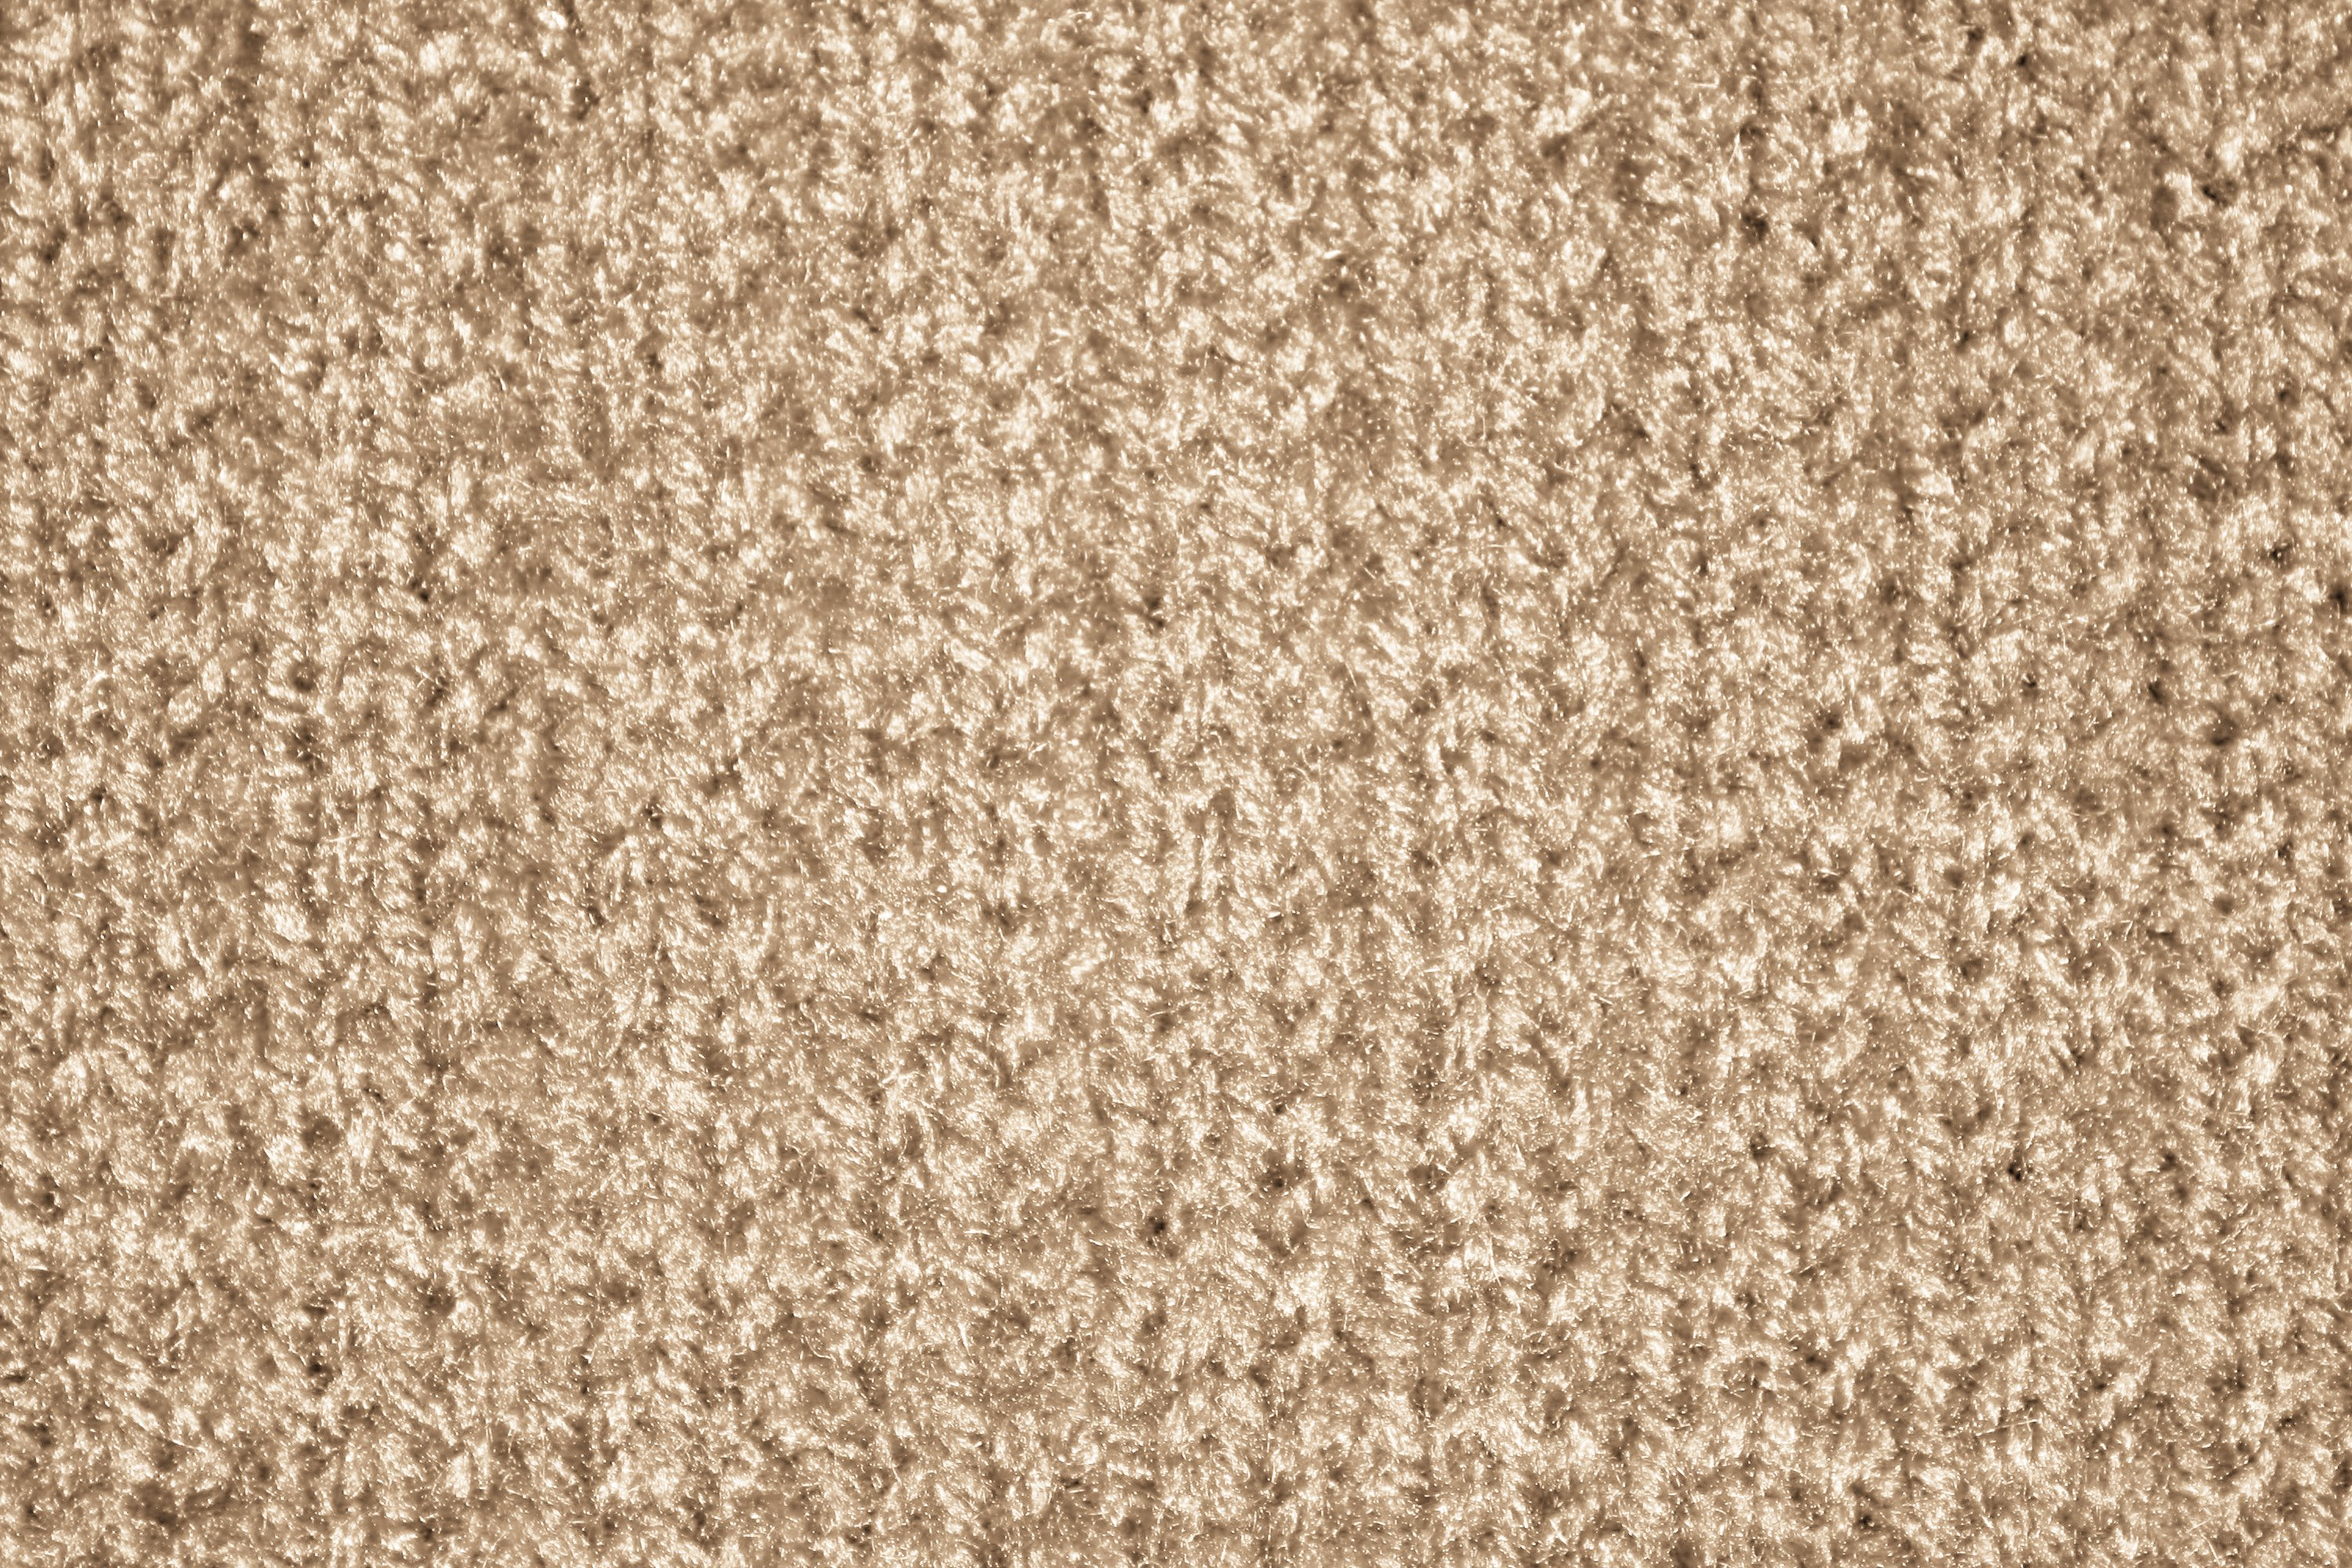 Knitting Patterns For Texture : Tan Knit Texture Picture Free Photograph Photos Public Domain